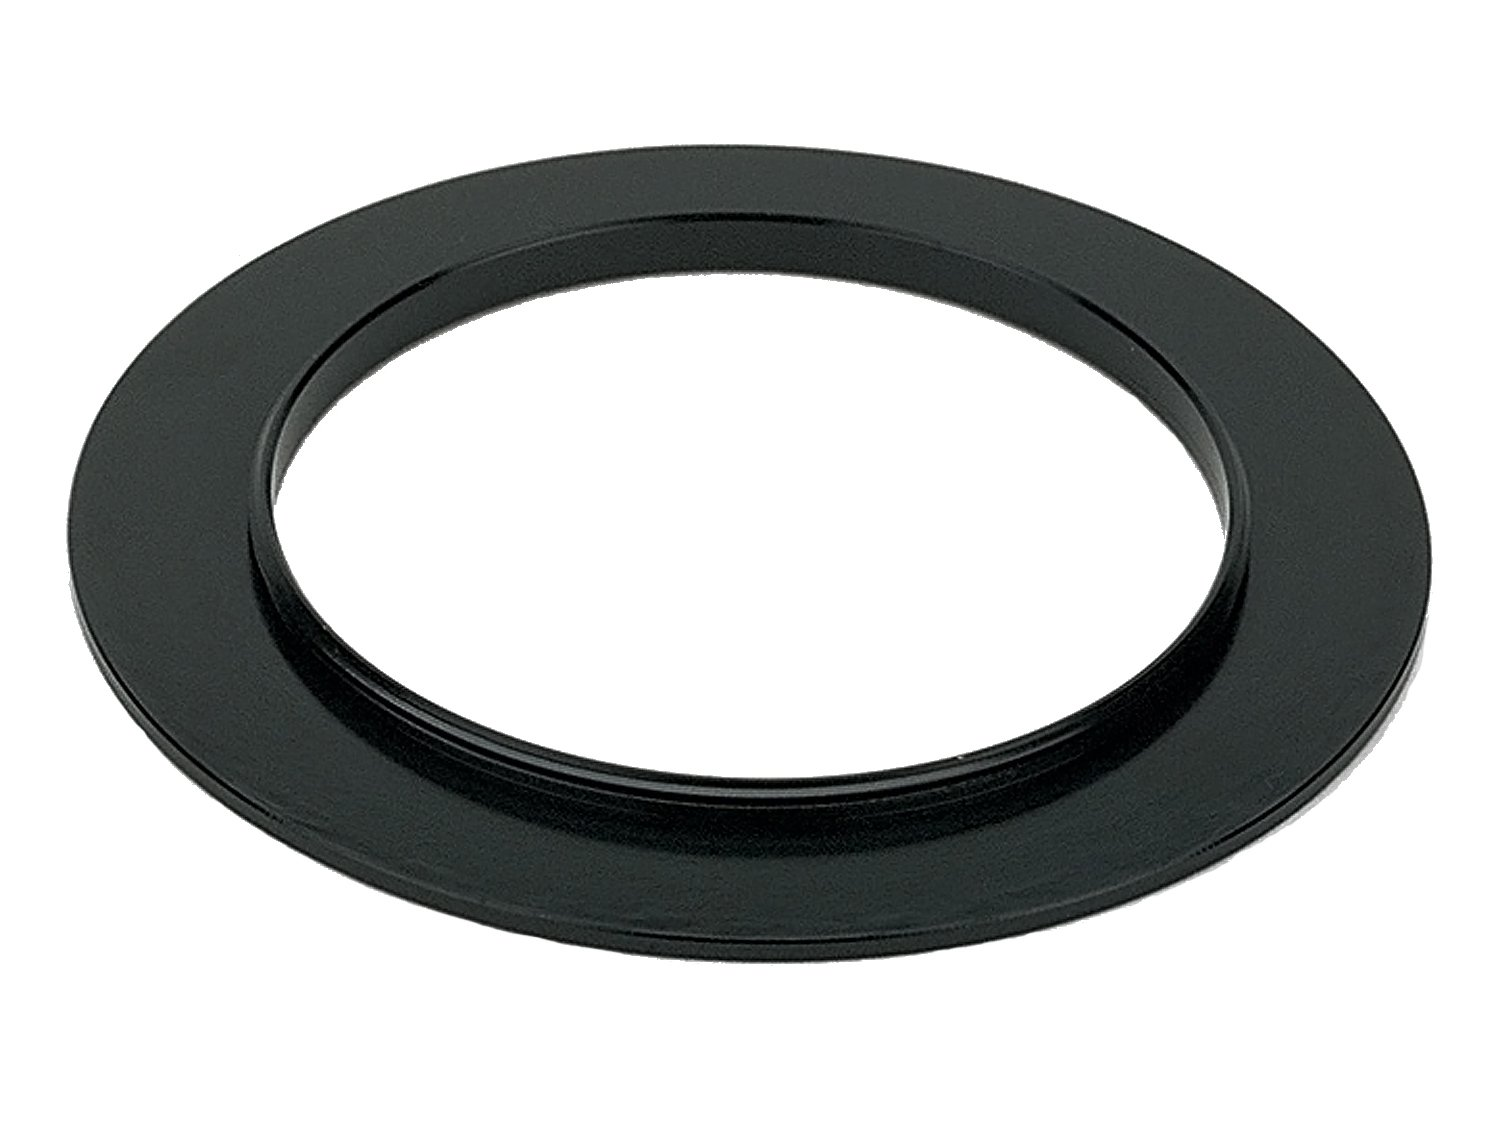 Cokin P449 Adapter Ring, Series P, 49FD by Cokin